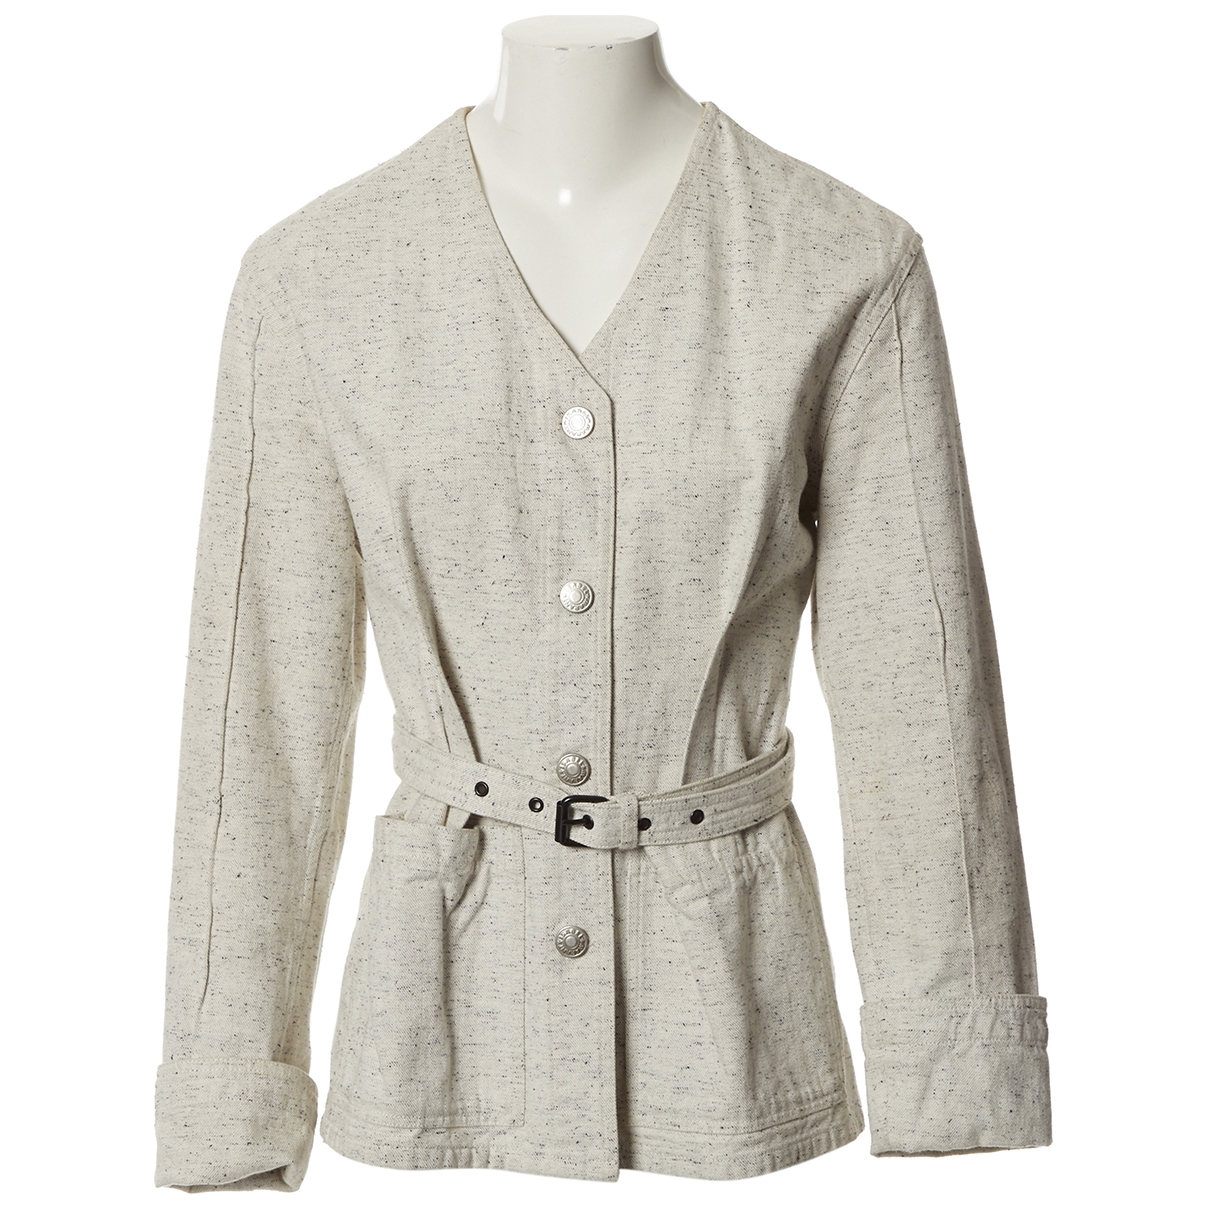 Isabel Marant \N Grey Cotton jacket for Women 34 FR